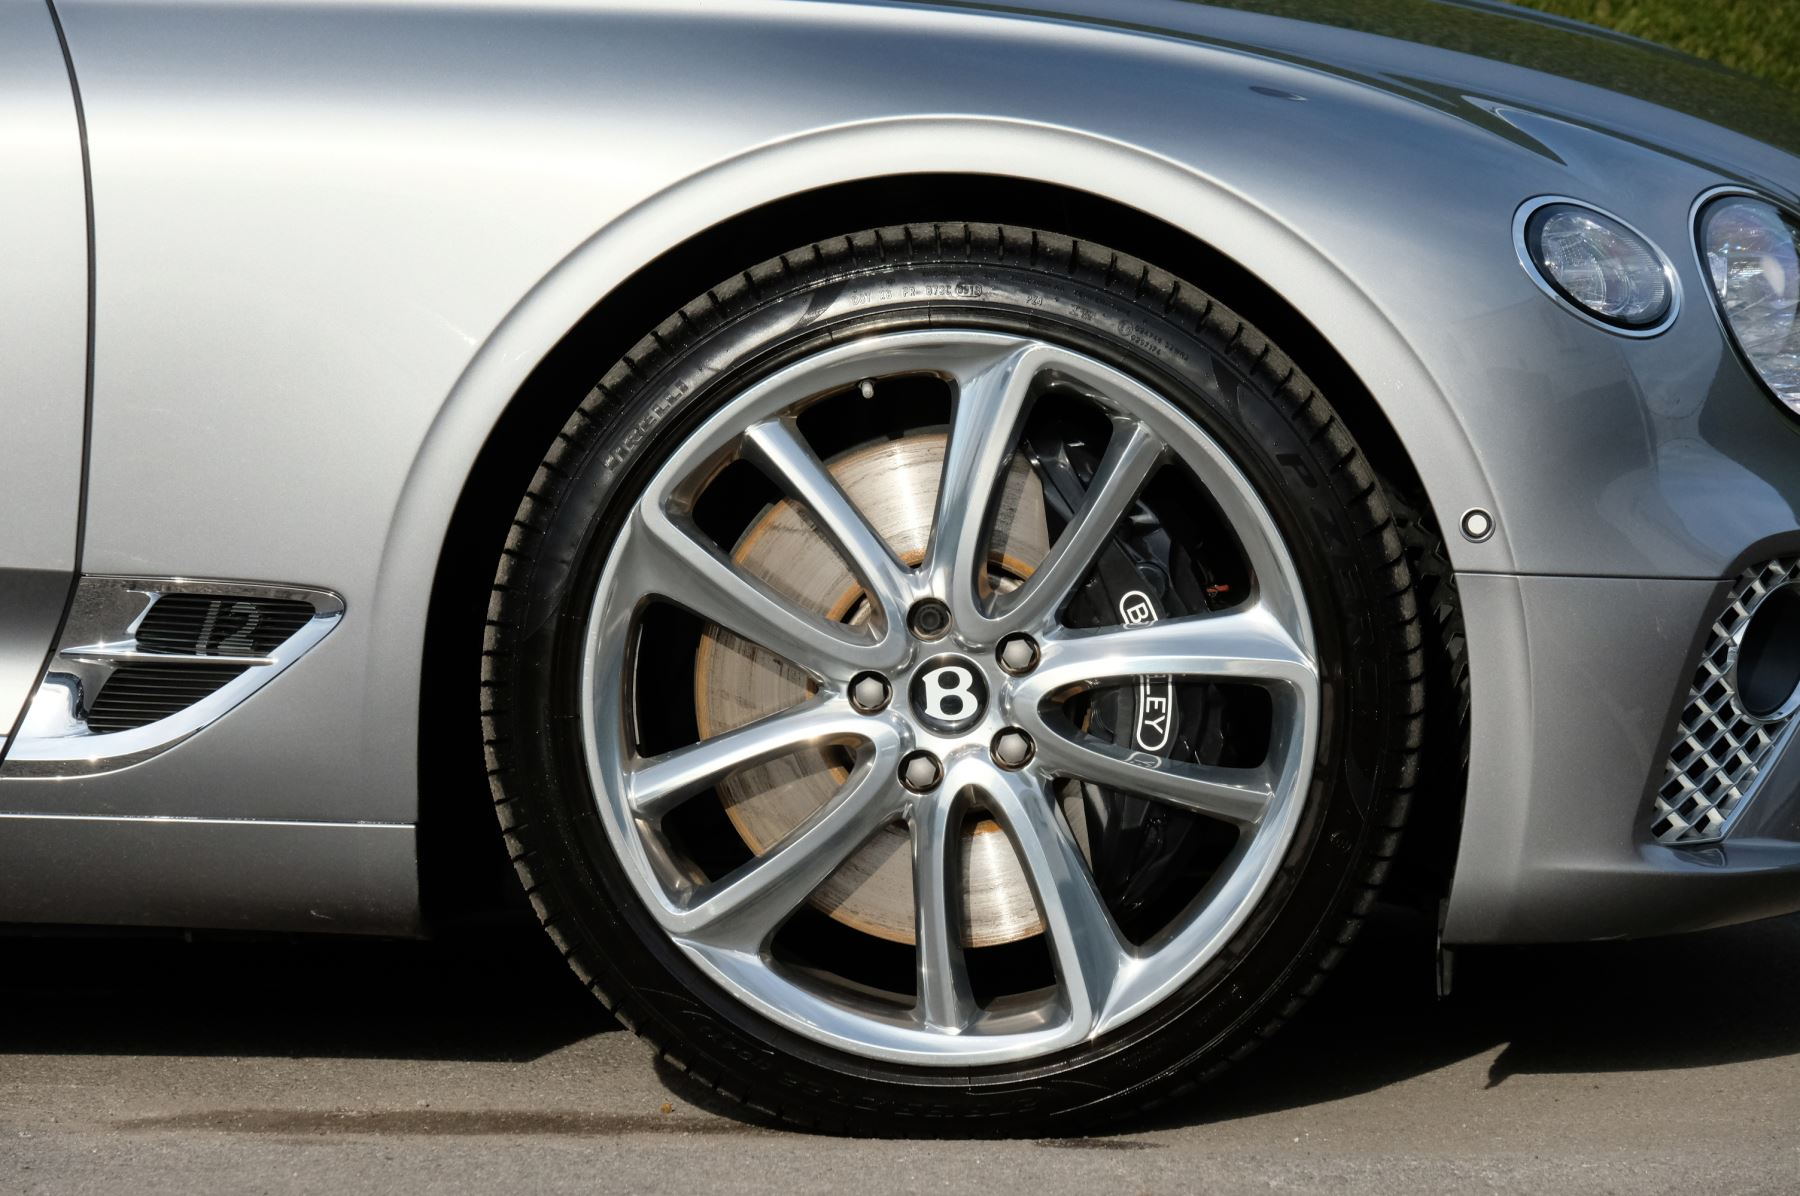 Bentley Continental GT 6.0 W12 2dr Mulliner Driving Specification image 6